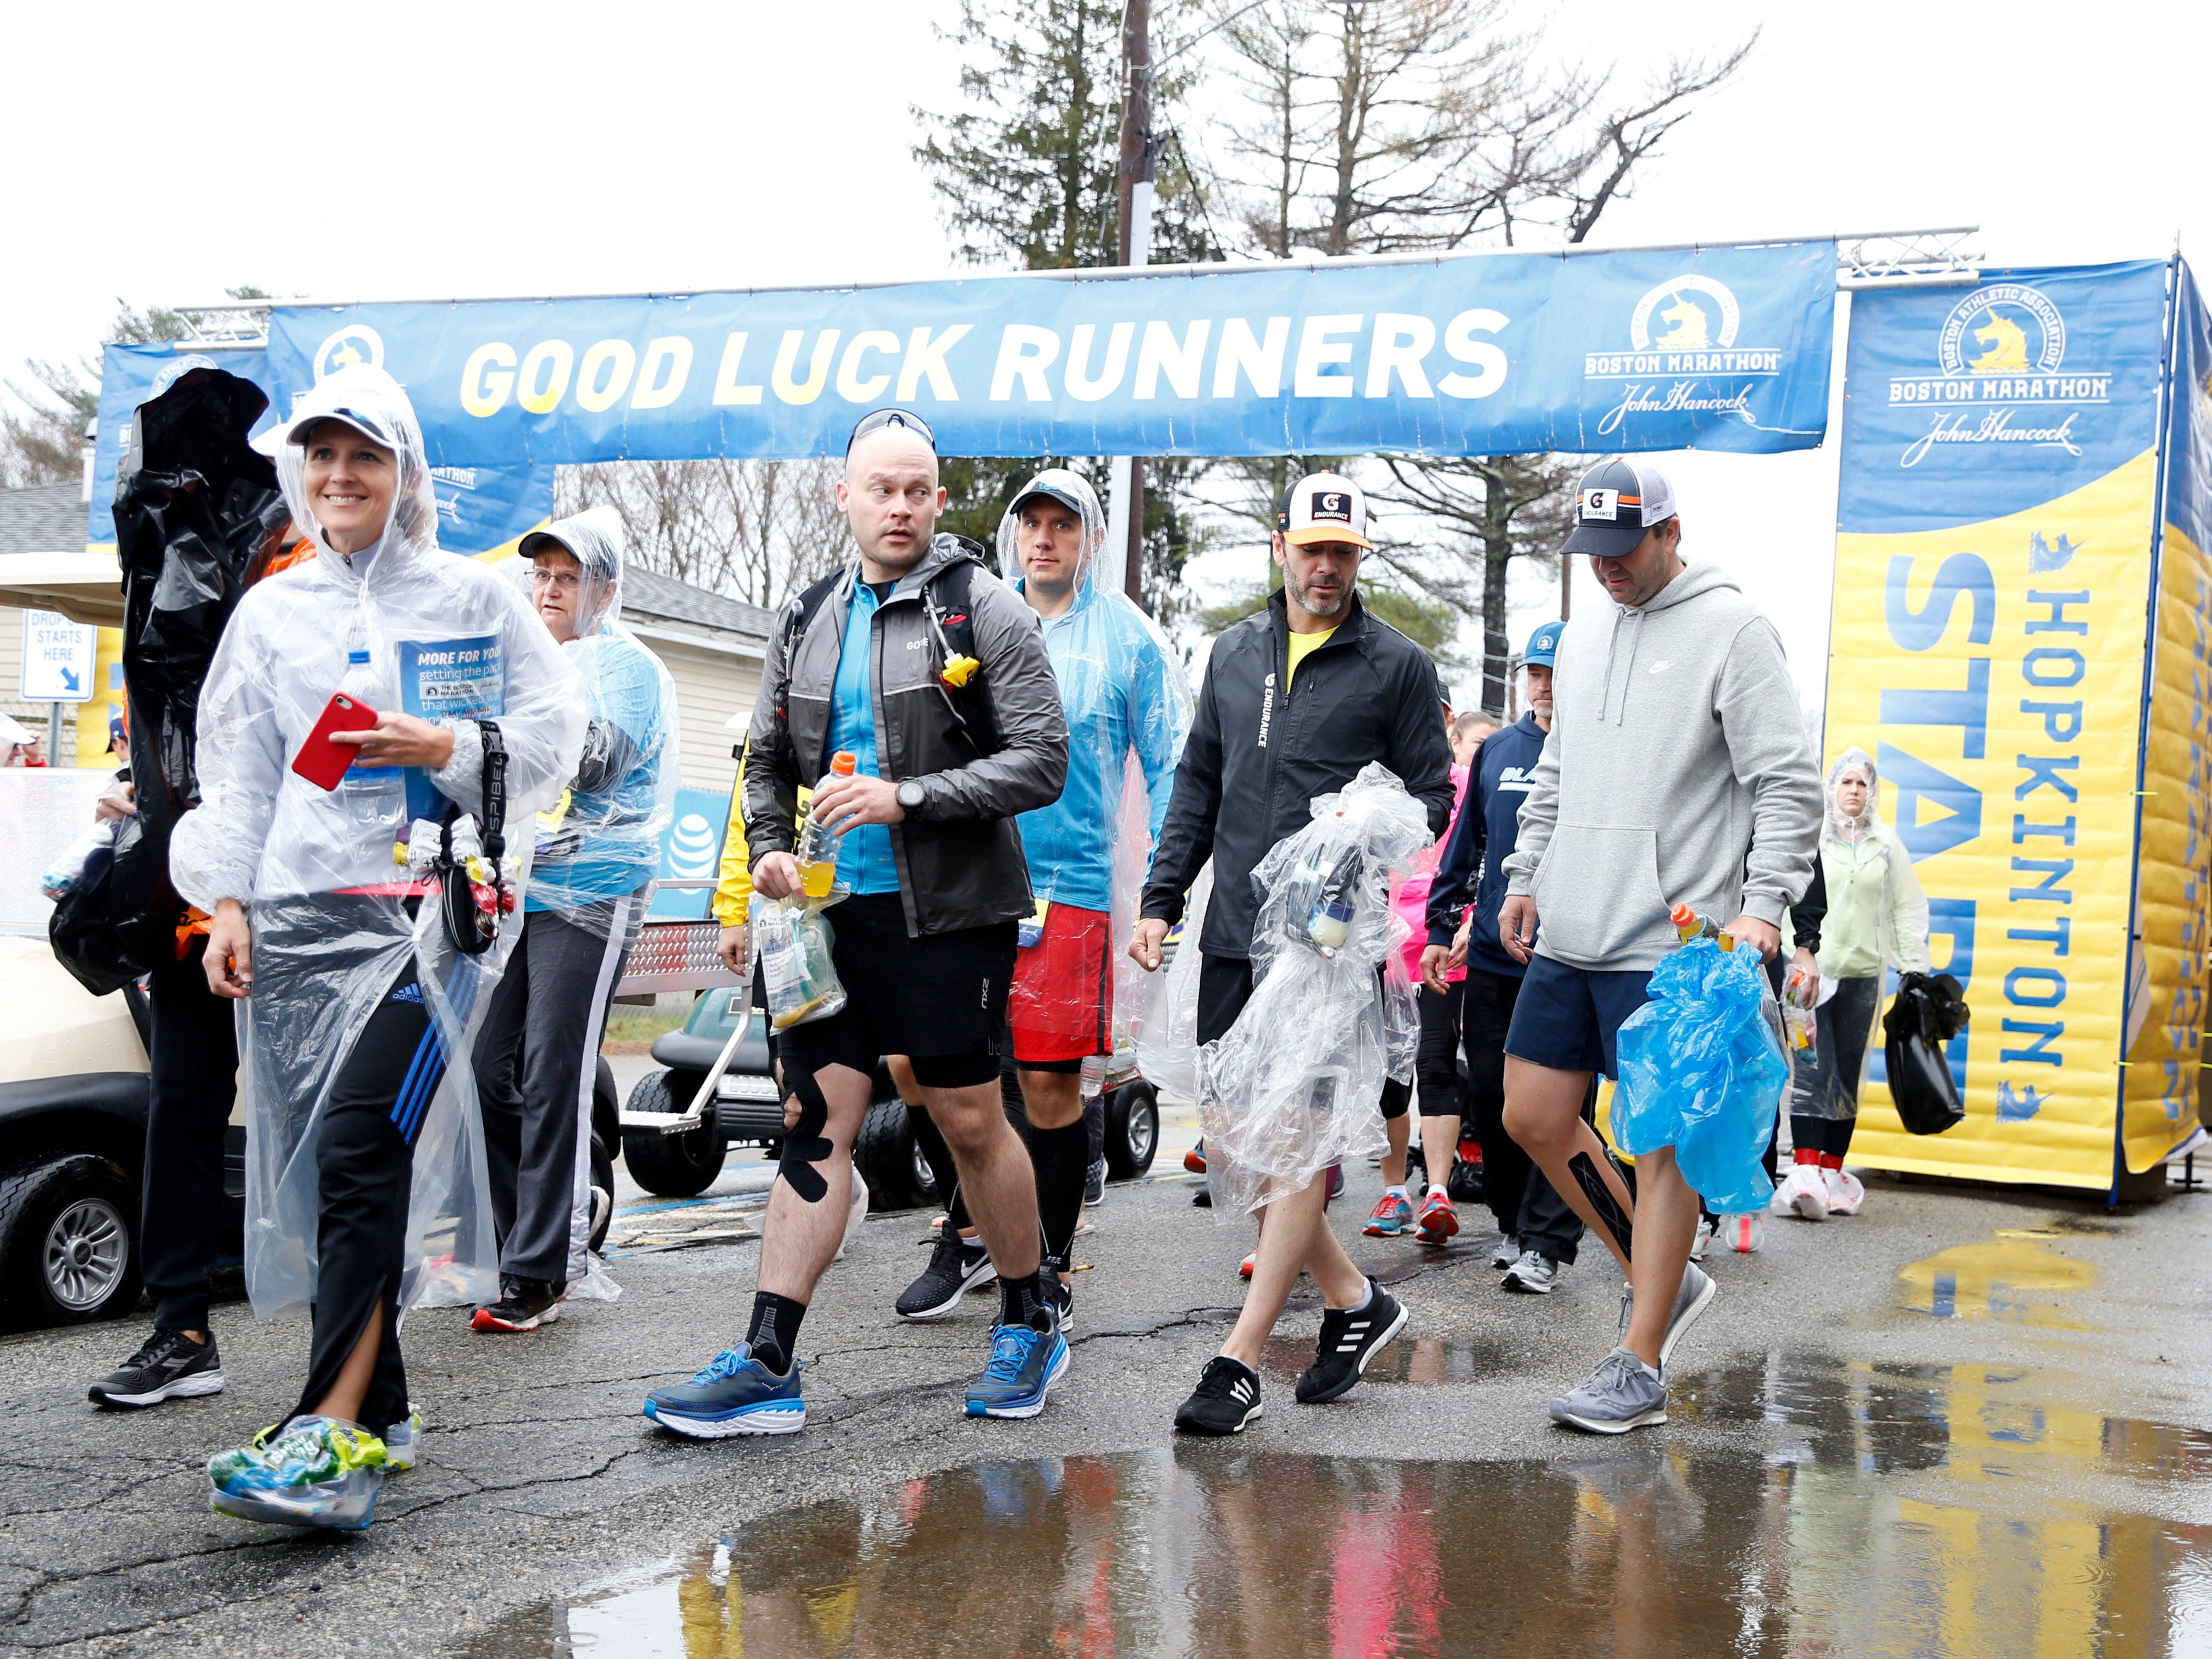 NASCAR driver Jimmie Johnson (second from right) prepares for the 2019 Boston Marathon.